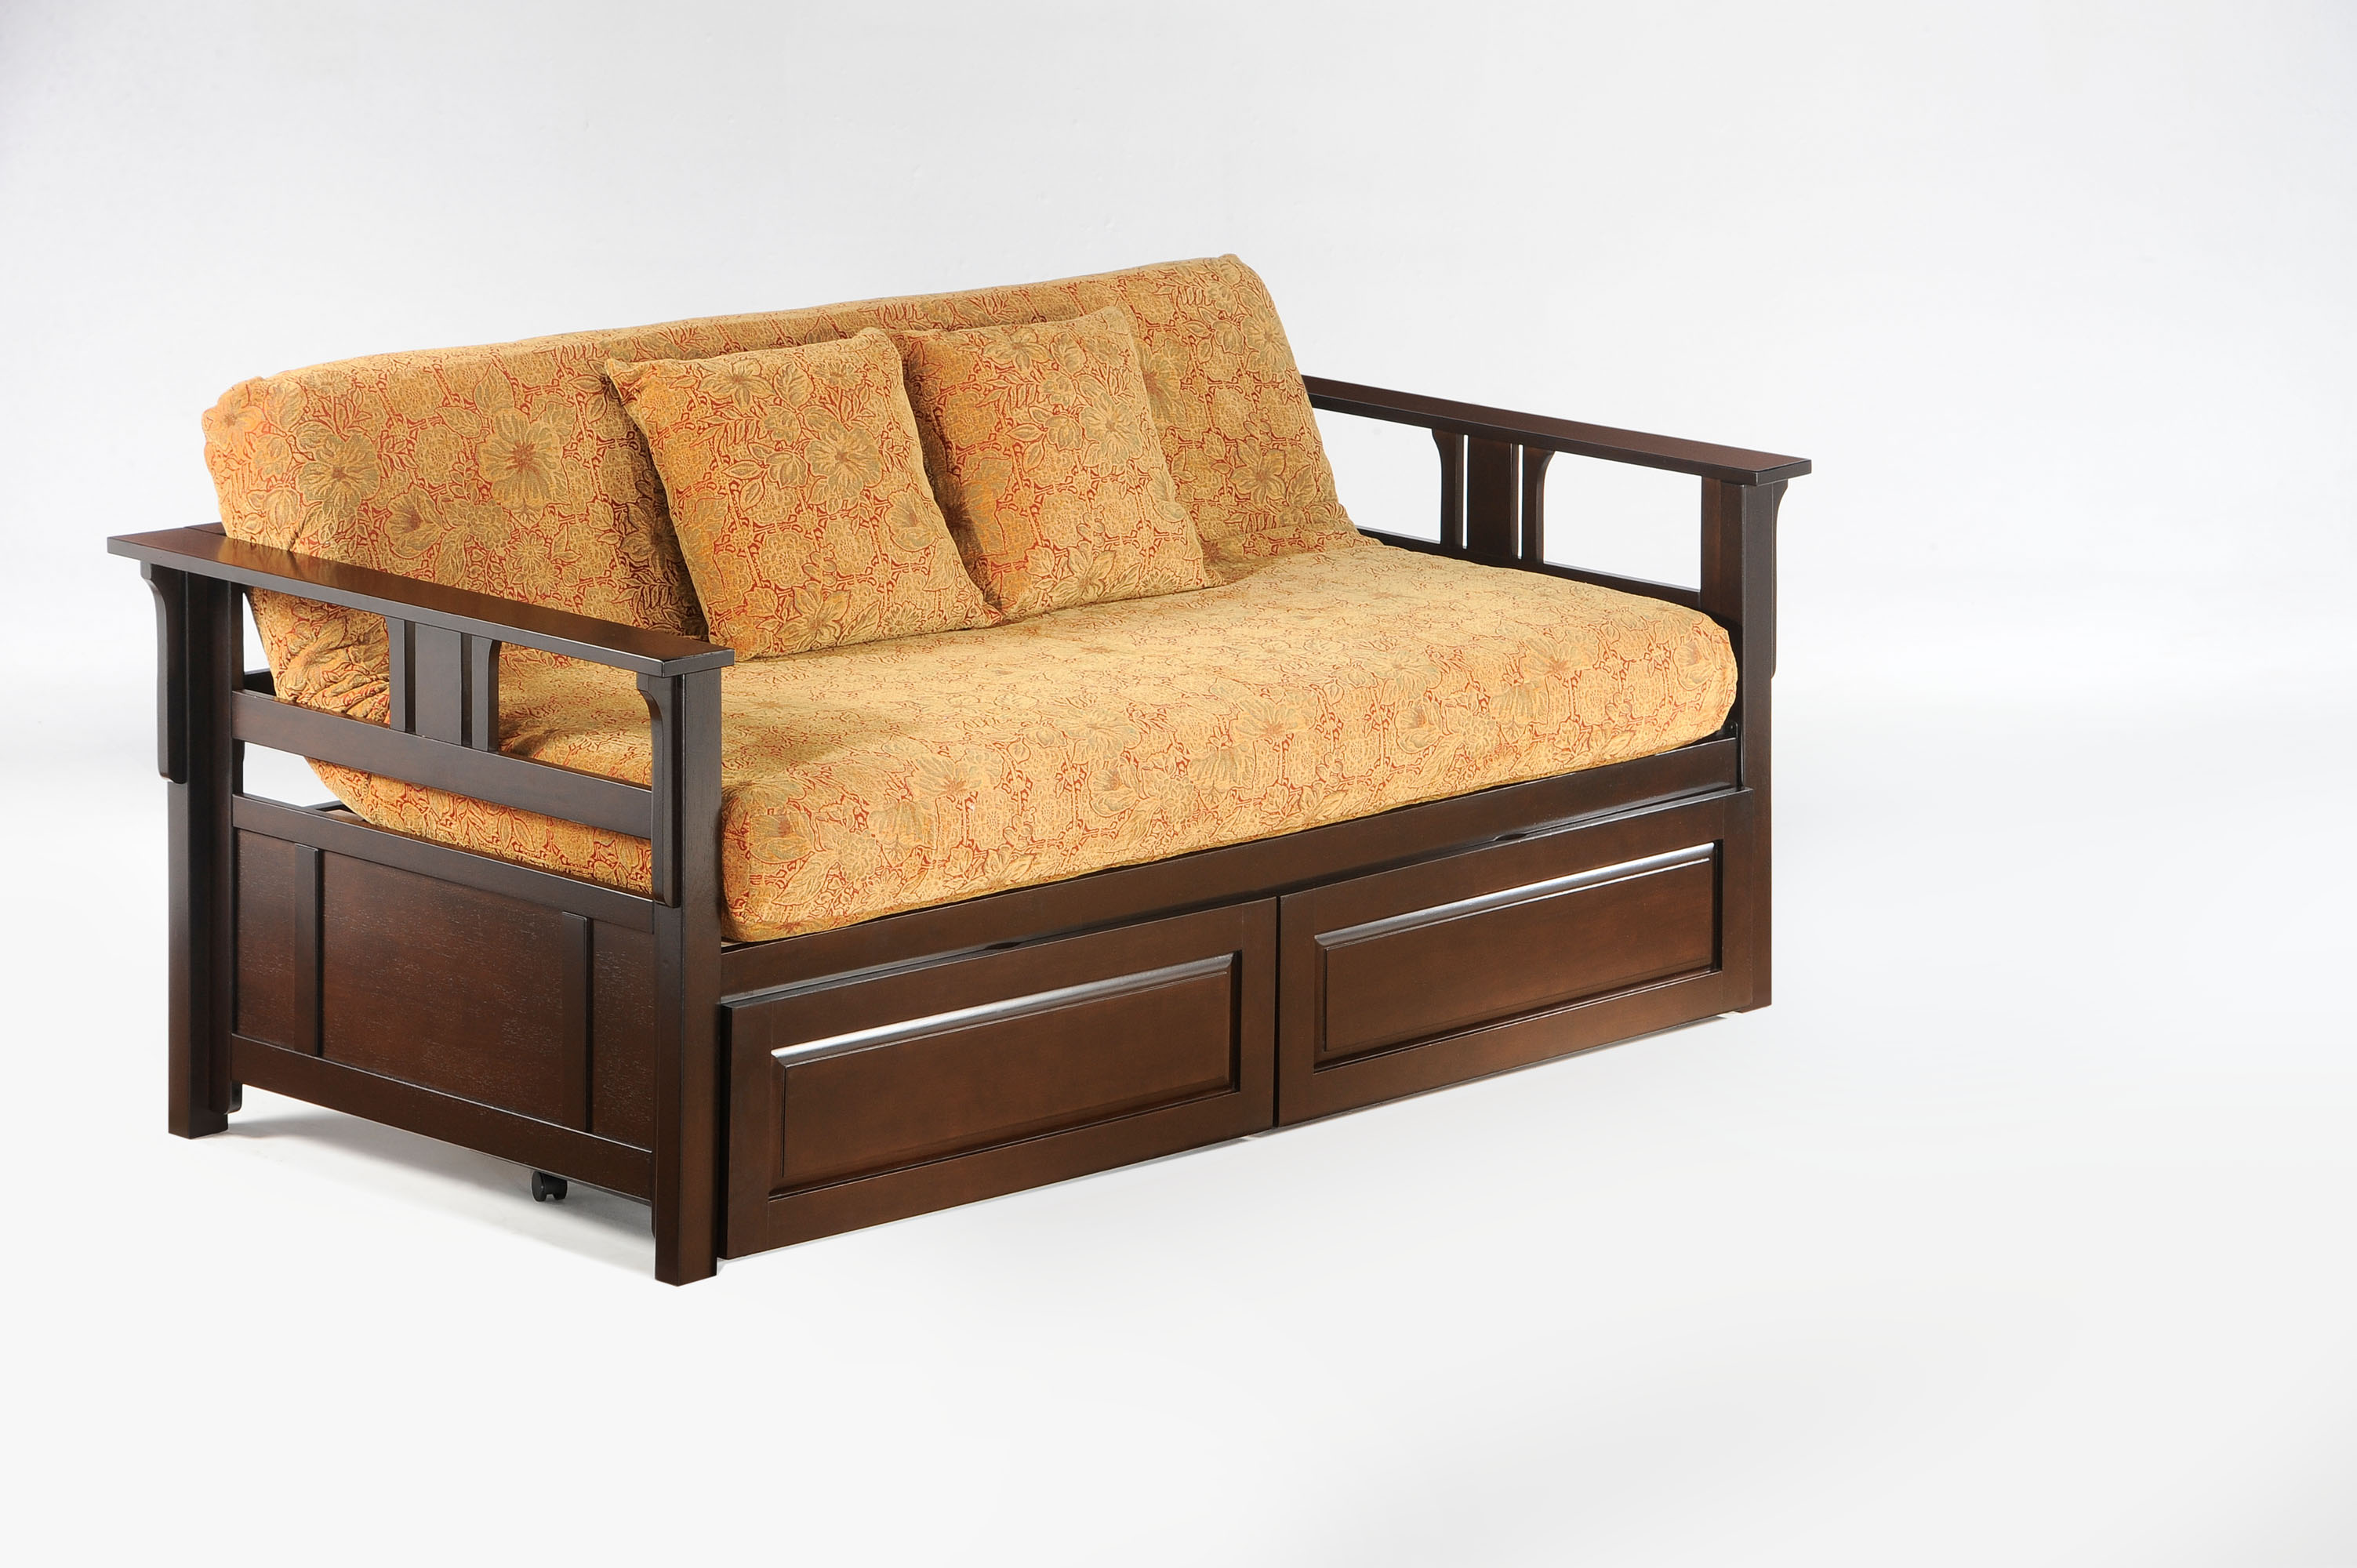 teddy r daybed dark chocolate w drawer closed     teddy roosevelt daybed frame   iowa city futon shop  rh   iowacityfutons